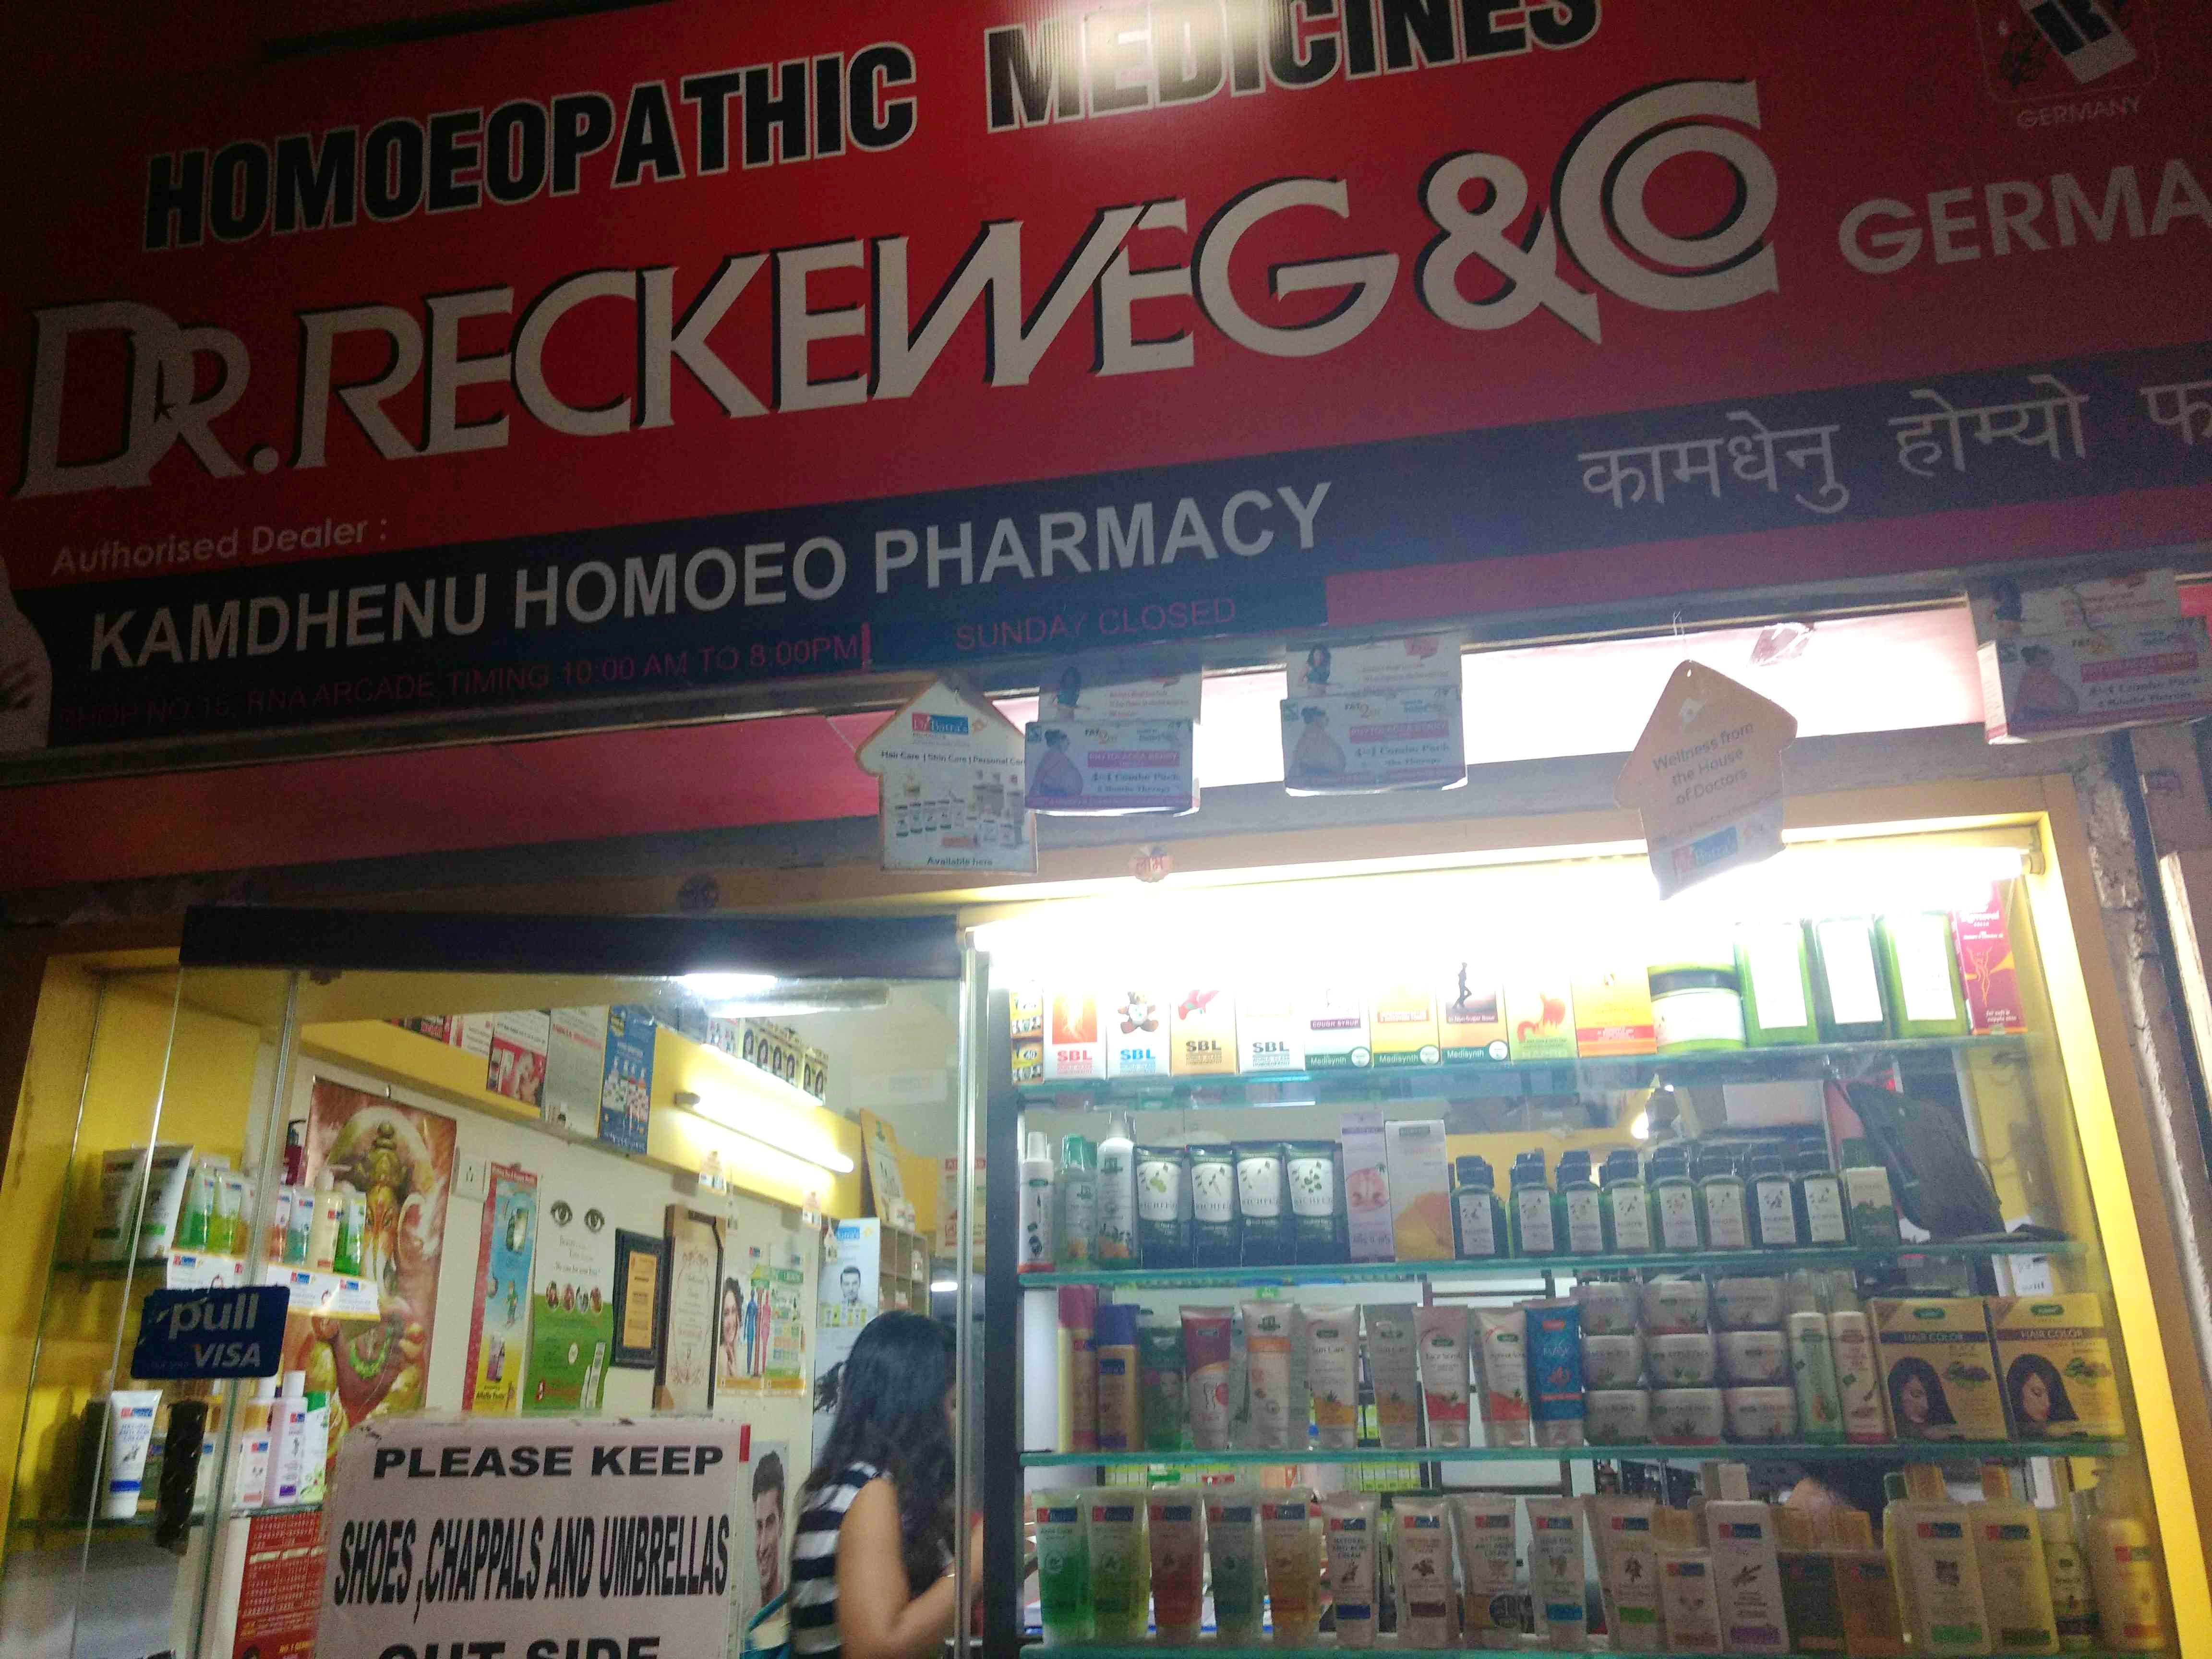 image - Kamdhenu Homeopathic Pharmacy